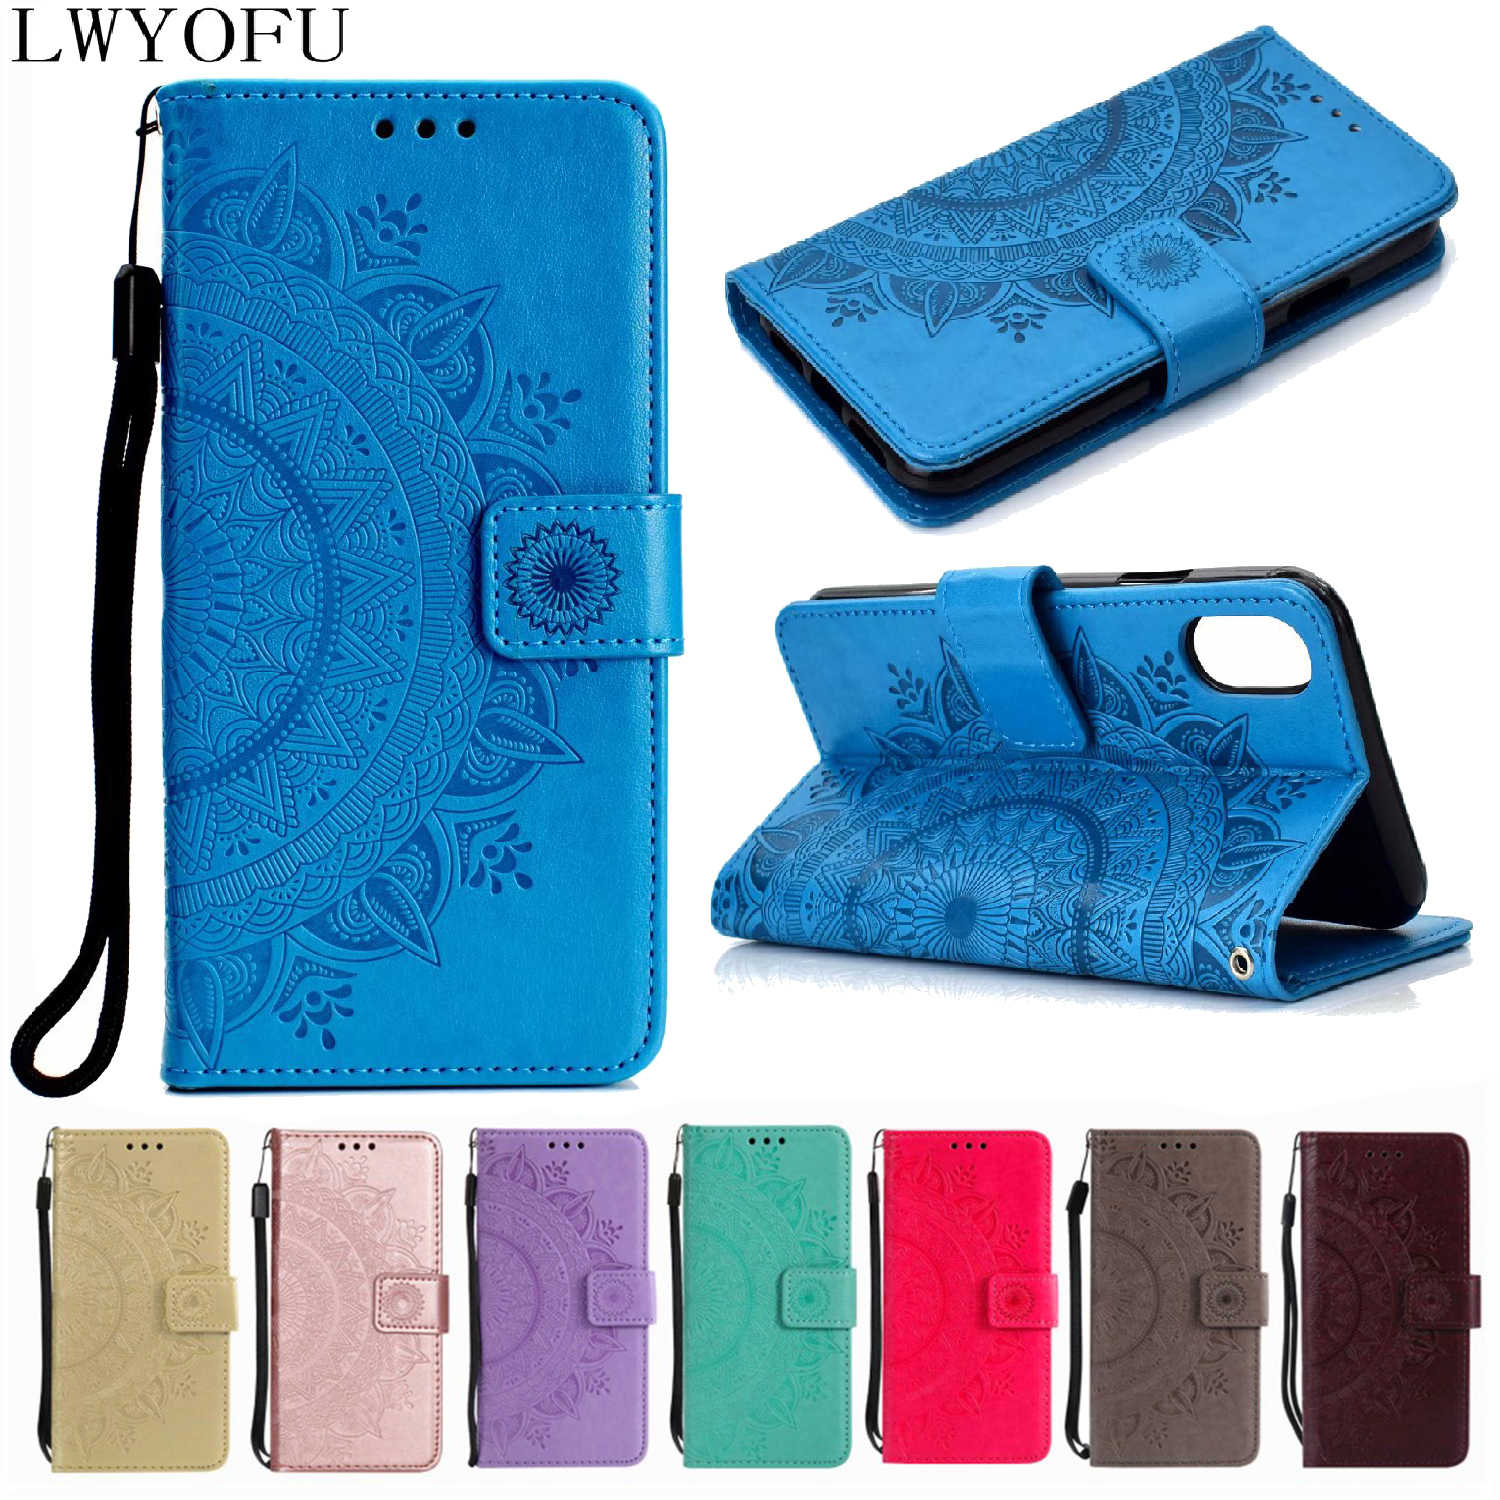 Deluxe Flap PU Leather Case for Xiaomi 8 Lite F1 6X Redmi 4X 5A 5 Plus Note 7 5 6 Pro 7A K20 Pro Card Slot Wallet Phone Case